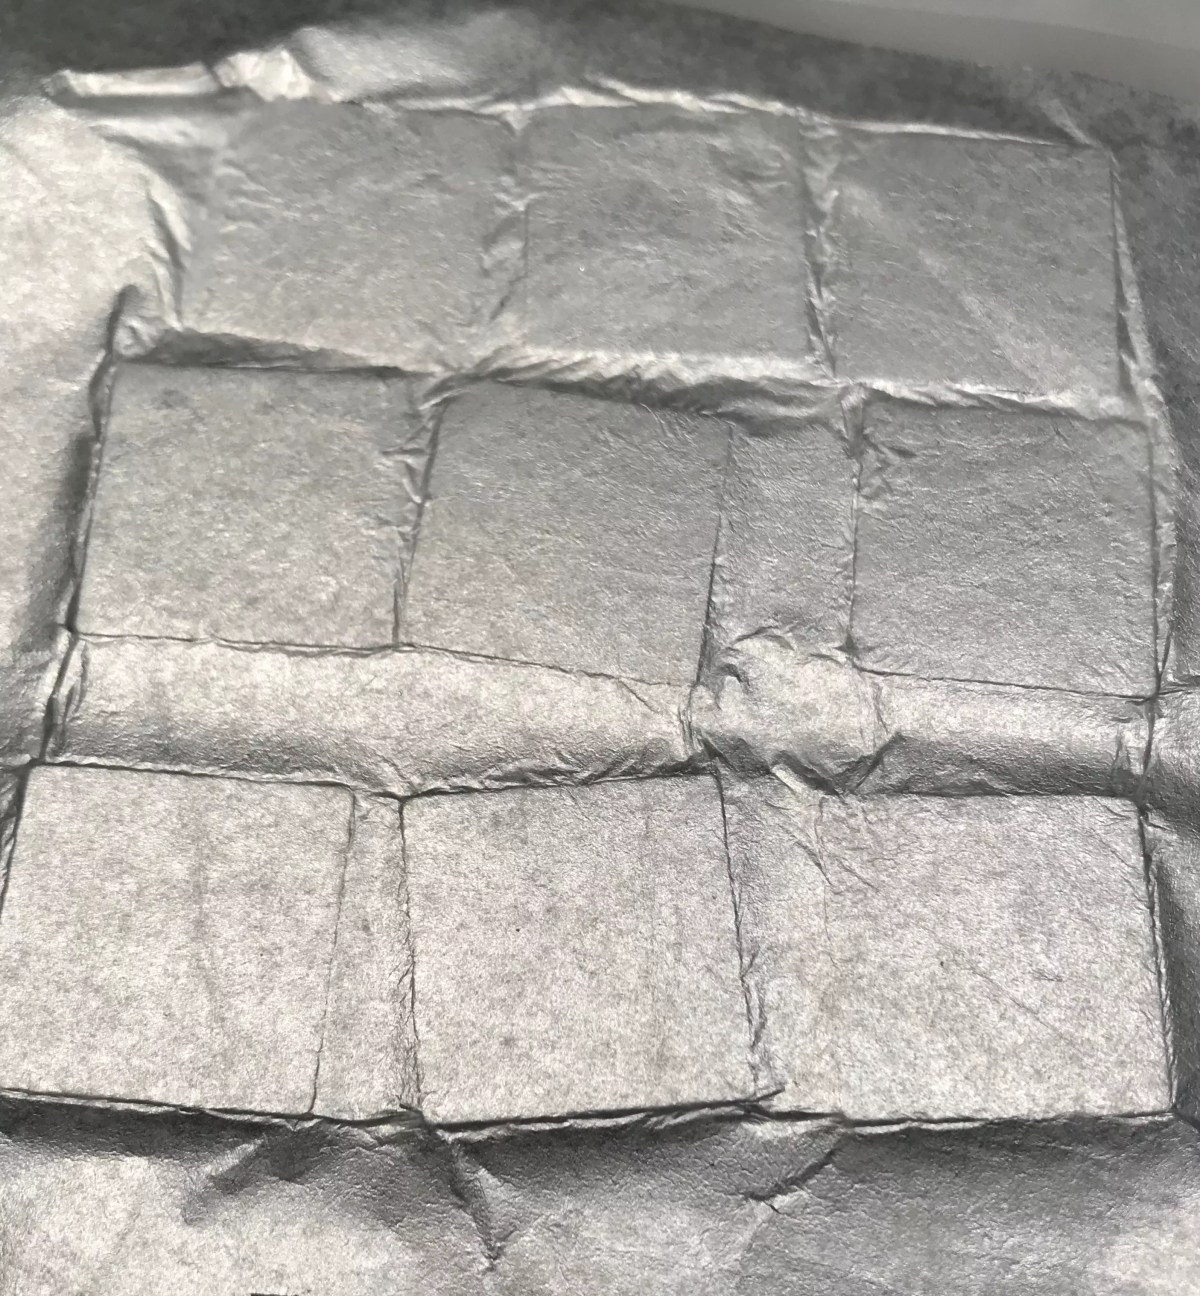 silver leafing covering wooden tiles